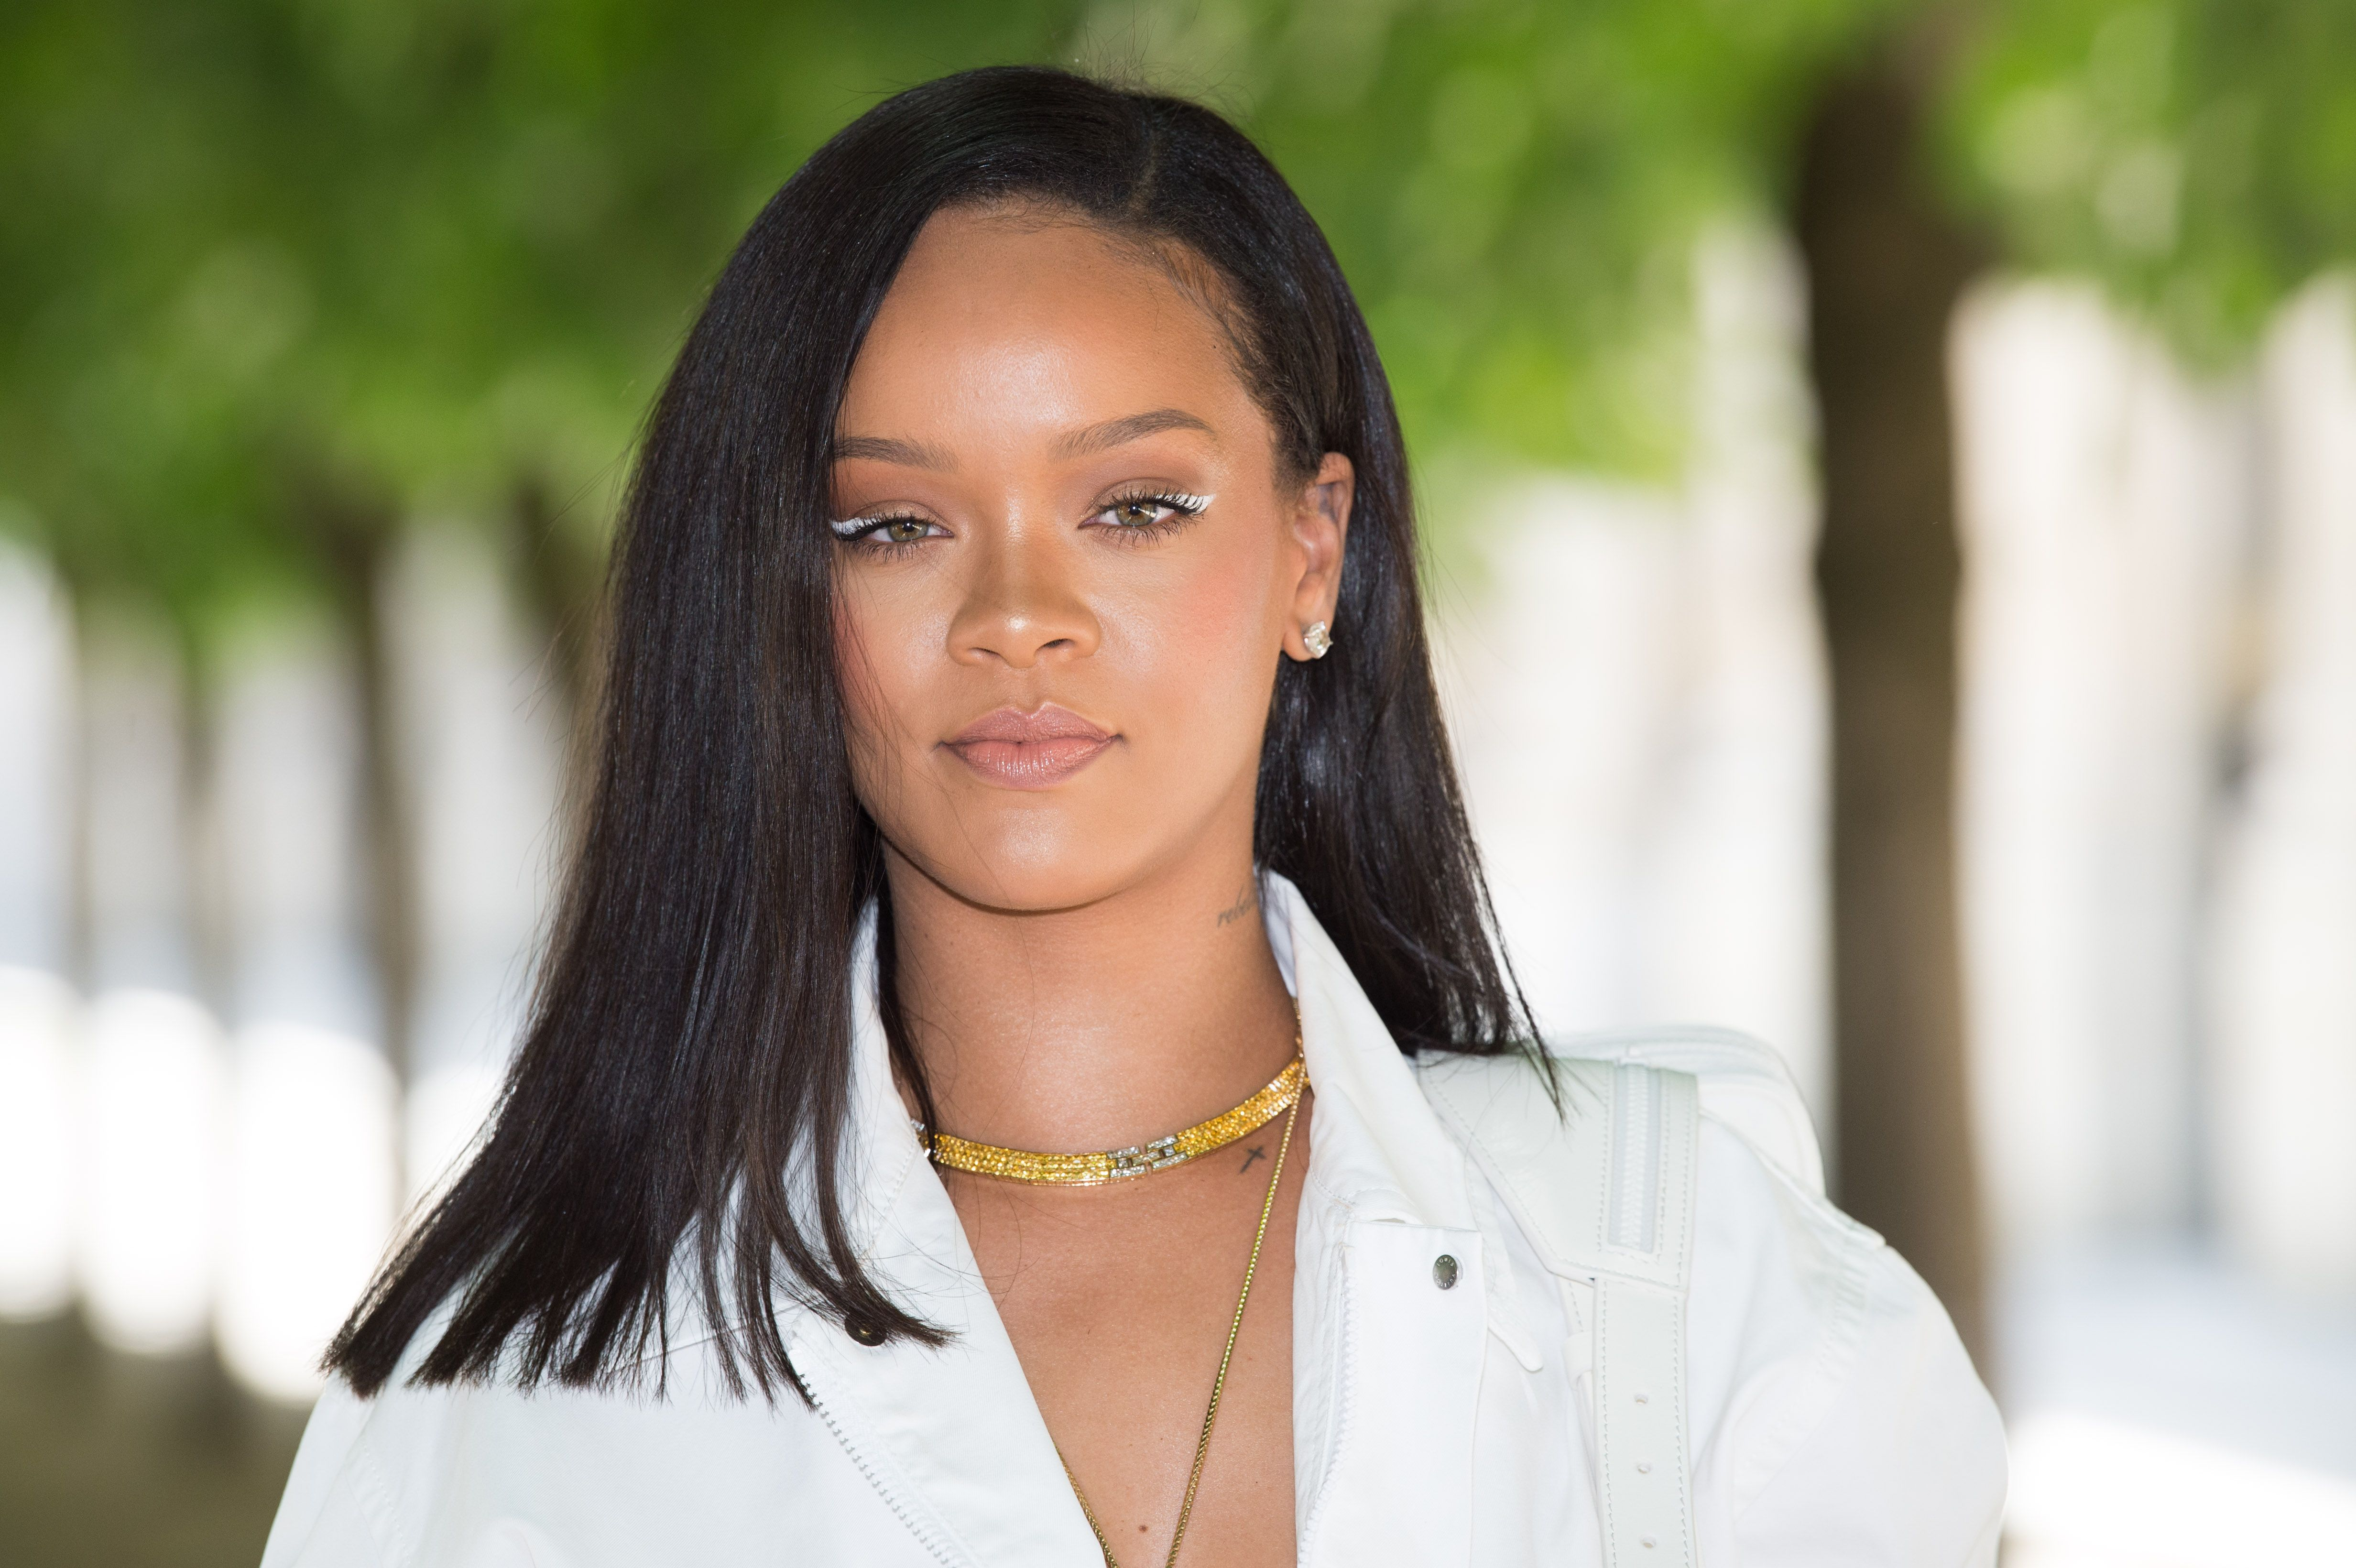 Rihanna on Fenty Fashion, Collaborating With Drake, and That New Album You're Waiting On